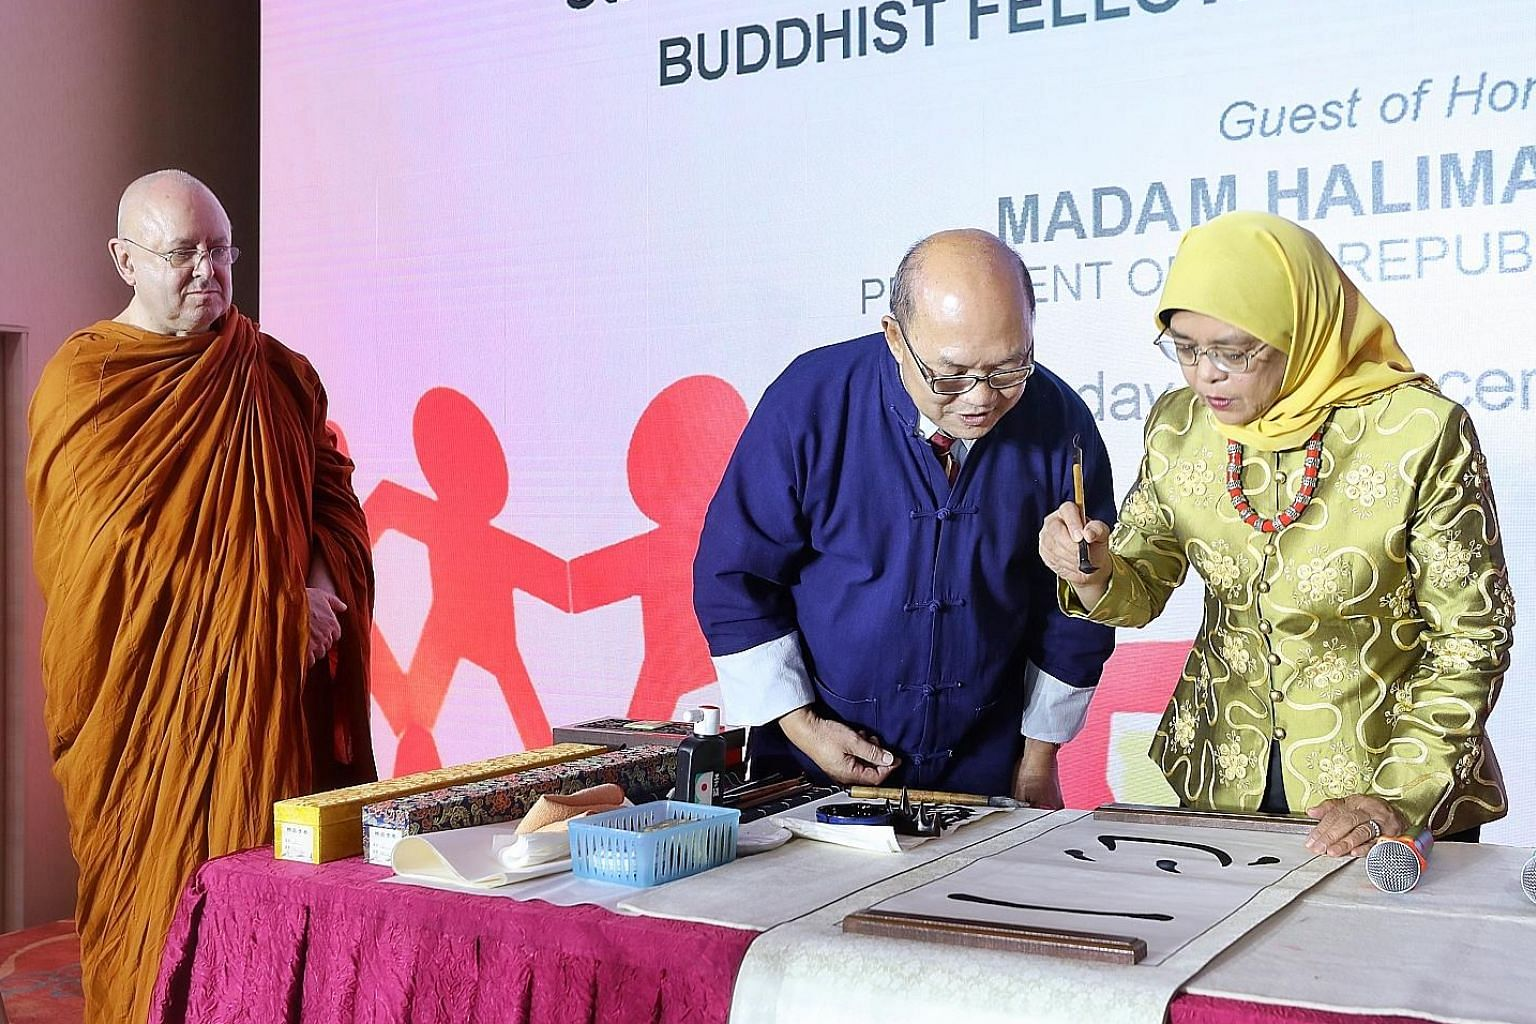 """The phrase """"one heart"""" echoed what Buddhist Fellowship president Lim Phang Hong identified as the key teachings of Buddhism - harmony and togetherness. The event's guest of honour, President Halimah Yacob, penning Chinese calligraphy of the phrase """"o"""